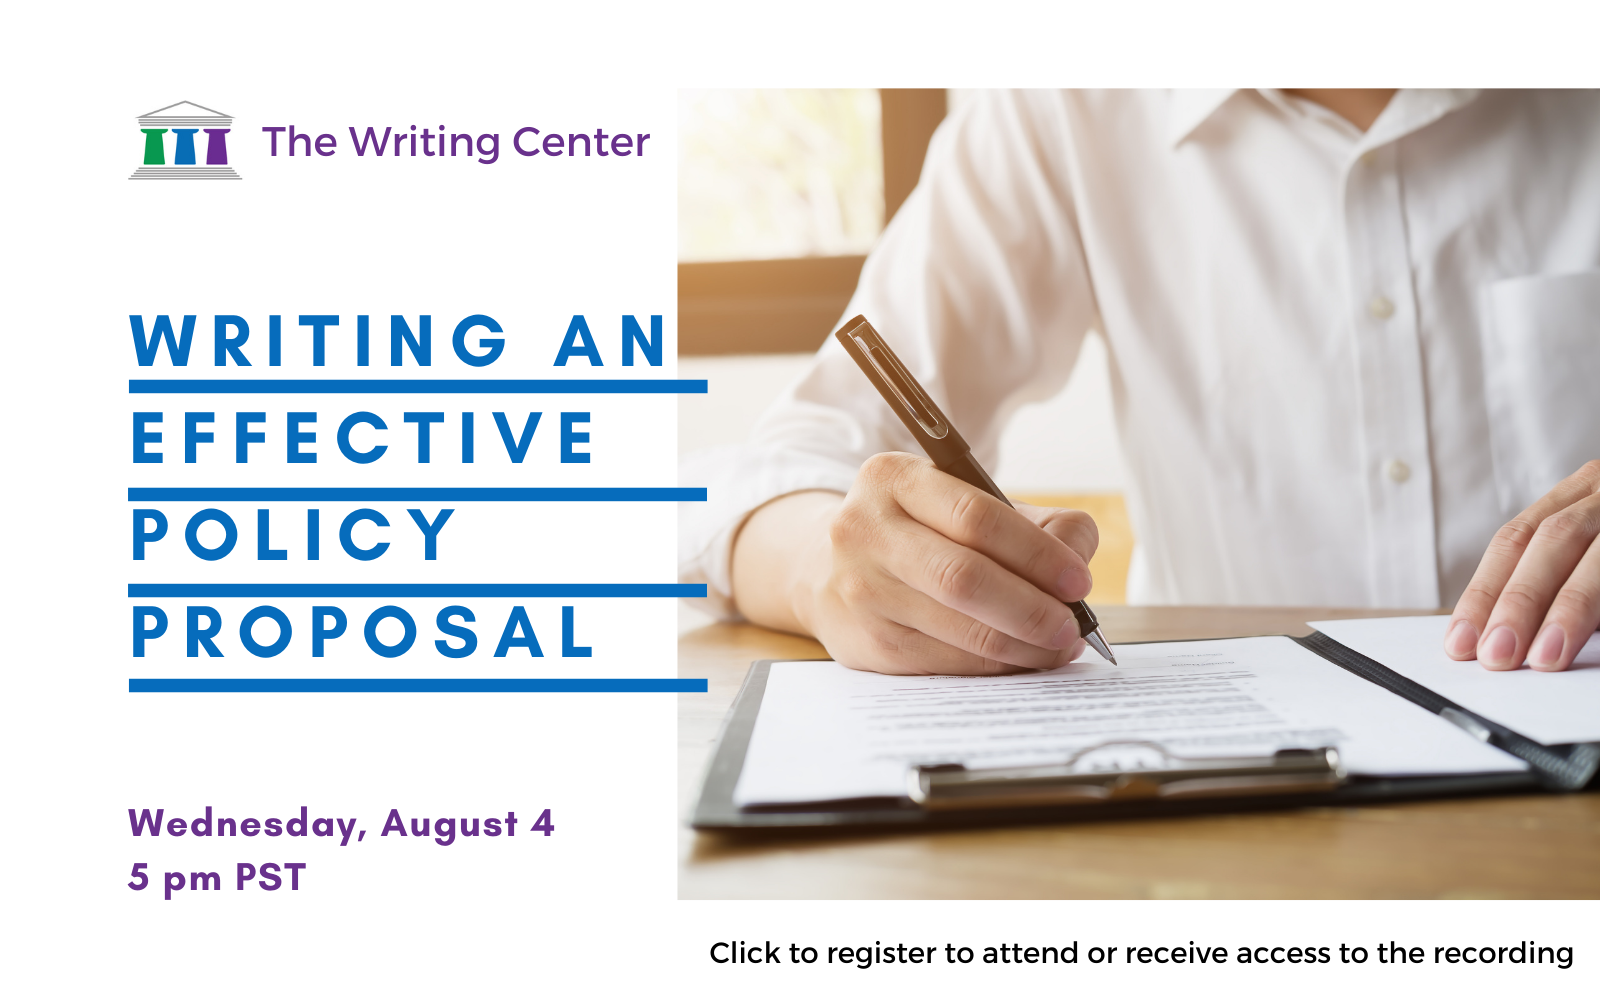 Writing an Effective Policy Proposal - Workshop by the Writing Center